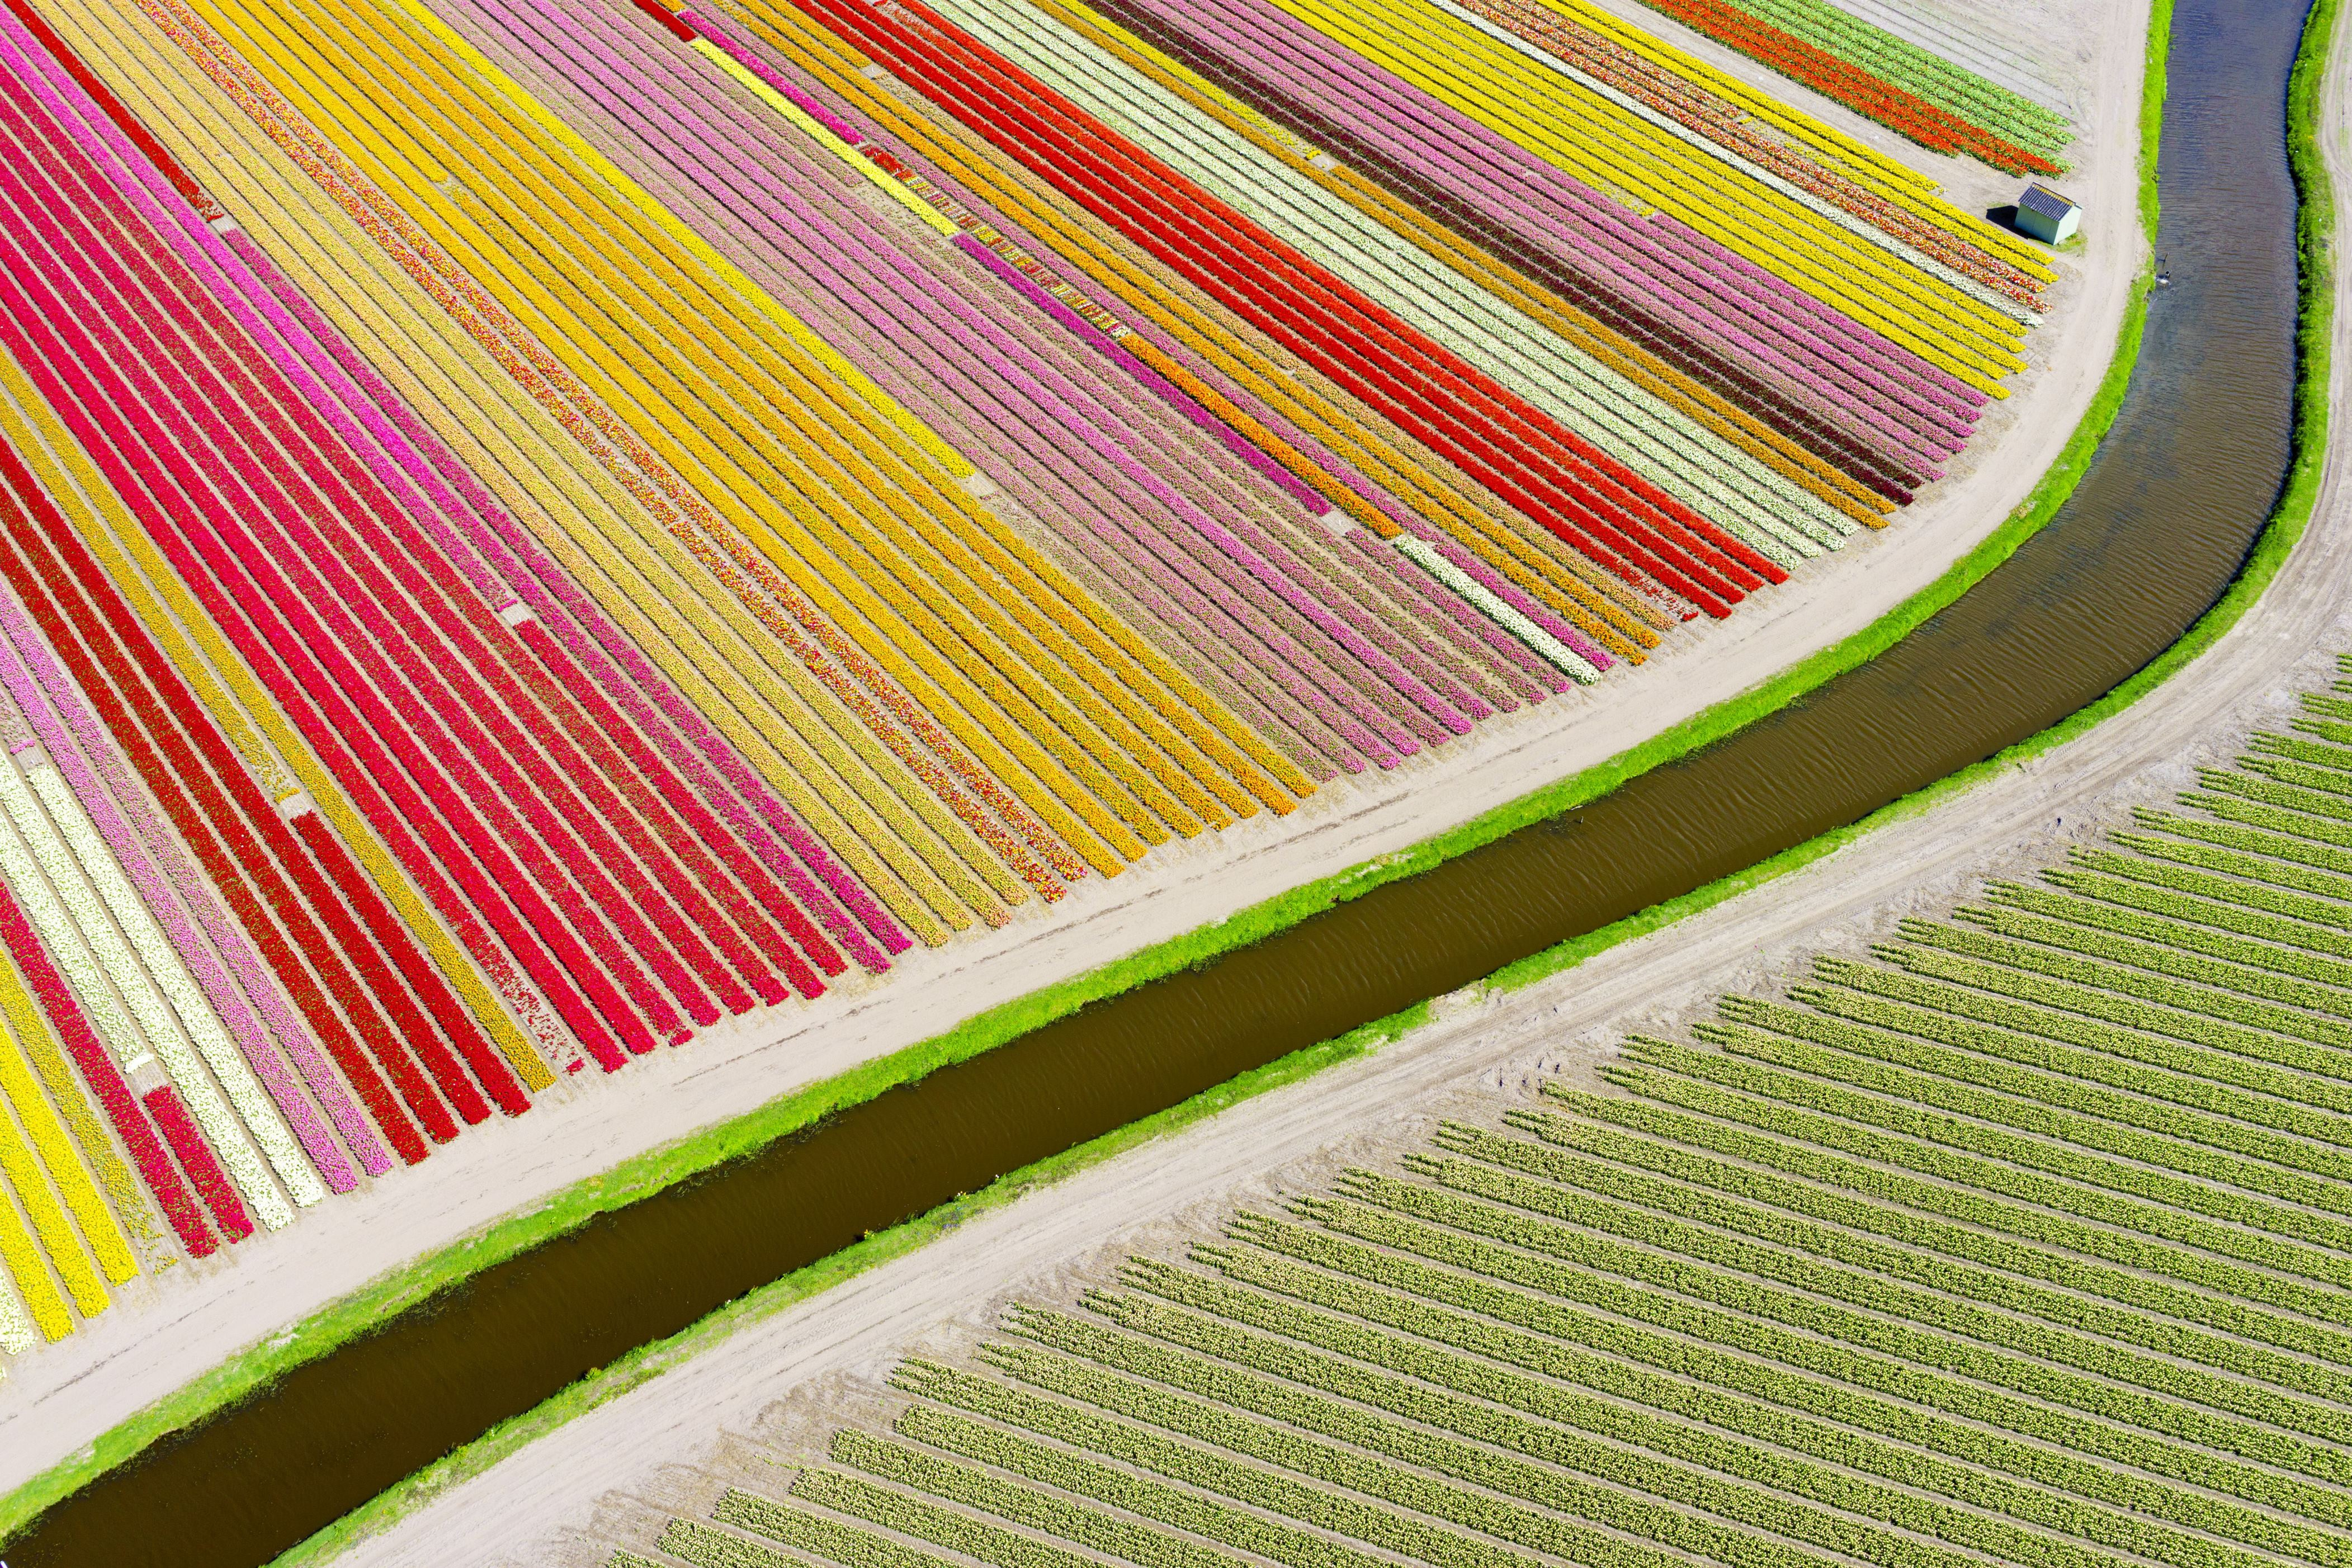 """Slide 10 of 73: FULL COPY: http://www.rexfeatures.com/nanolink/qn8o A photographer has shot a series of stunning aerial photographs of the tulip fields in the Netherlands using a drone. The photos reveal striped fields of red, yellow, purple, black and blue tulips. Meanwhile, large areas of hyacinths can be seen draped around the surrounding areas. Swedish-based photographer Anders Andersson, 42, said: """"My idea was to create abstract patterns of colour, something like the Dutch artist Mondrian did with a paint brush."""" Anders used Google Earth to scan the Netherlands in order to find the right location to shoot the Tulip Field series. He settled on the 'tulip-mania district' near Sassenheim, Netherlands. He had to time the project carefully to ensure the flowers were in full-bloom, whilst ensuring they had not yet been cut and sold. Anders subscribed to a Dutch tulip newsletters and anxiously waited for the right moment."""